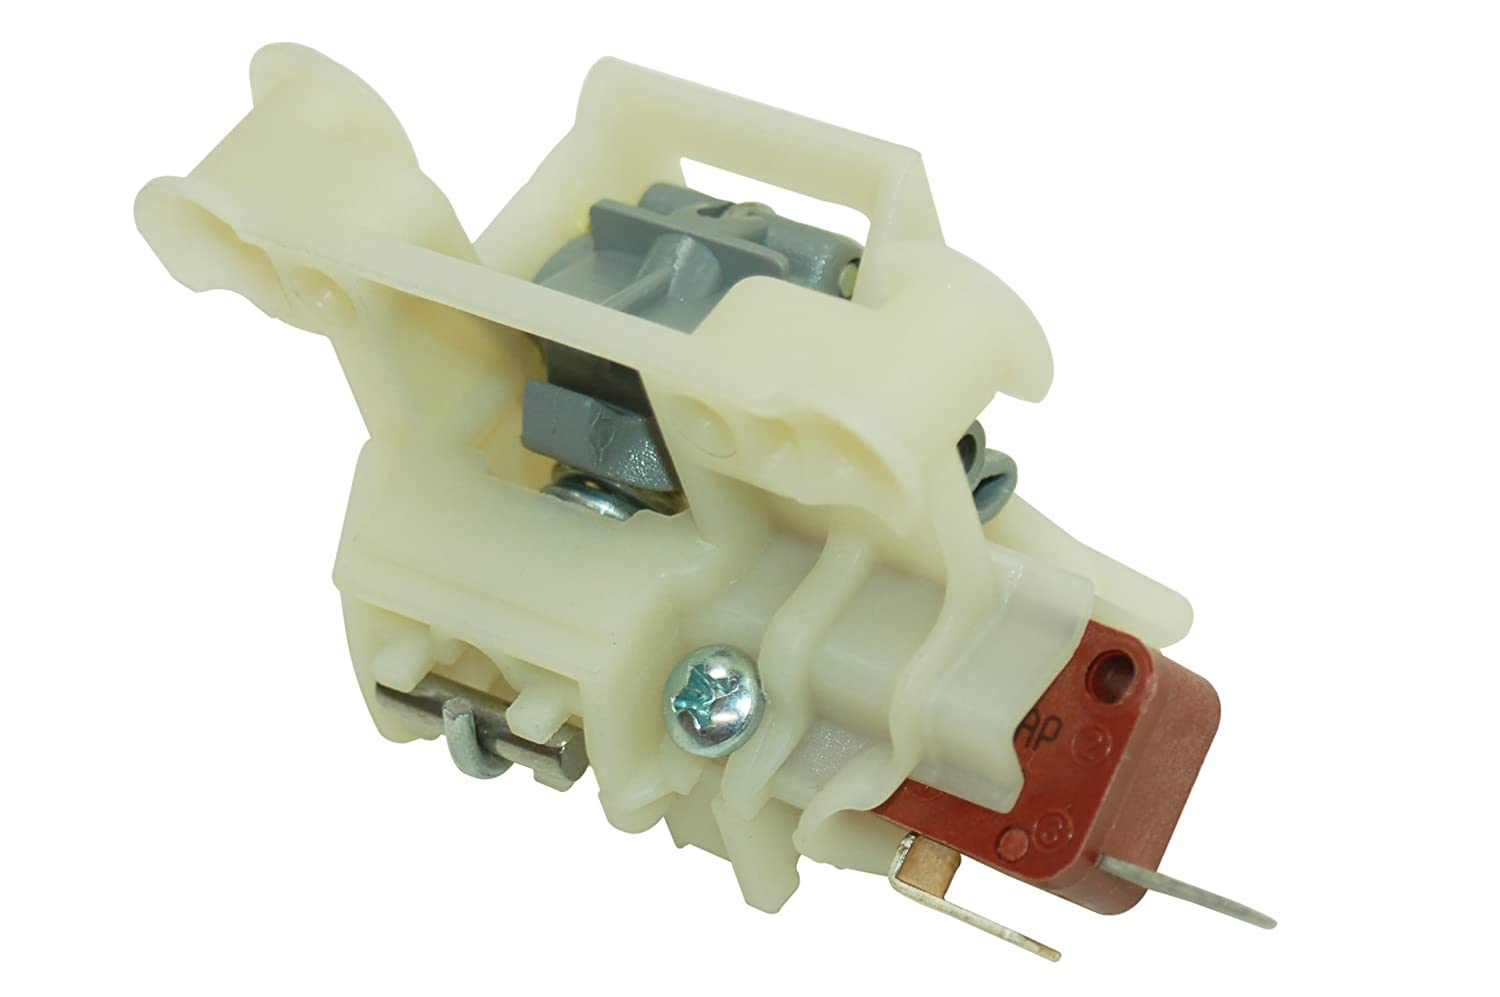 Candy 41013195 Hoover Iberna Rosieres Dishwasher Latch